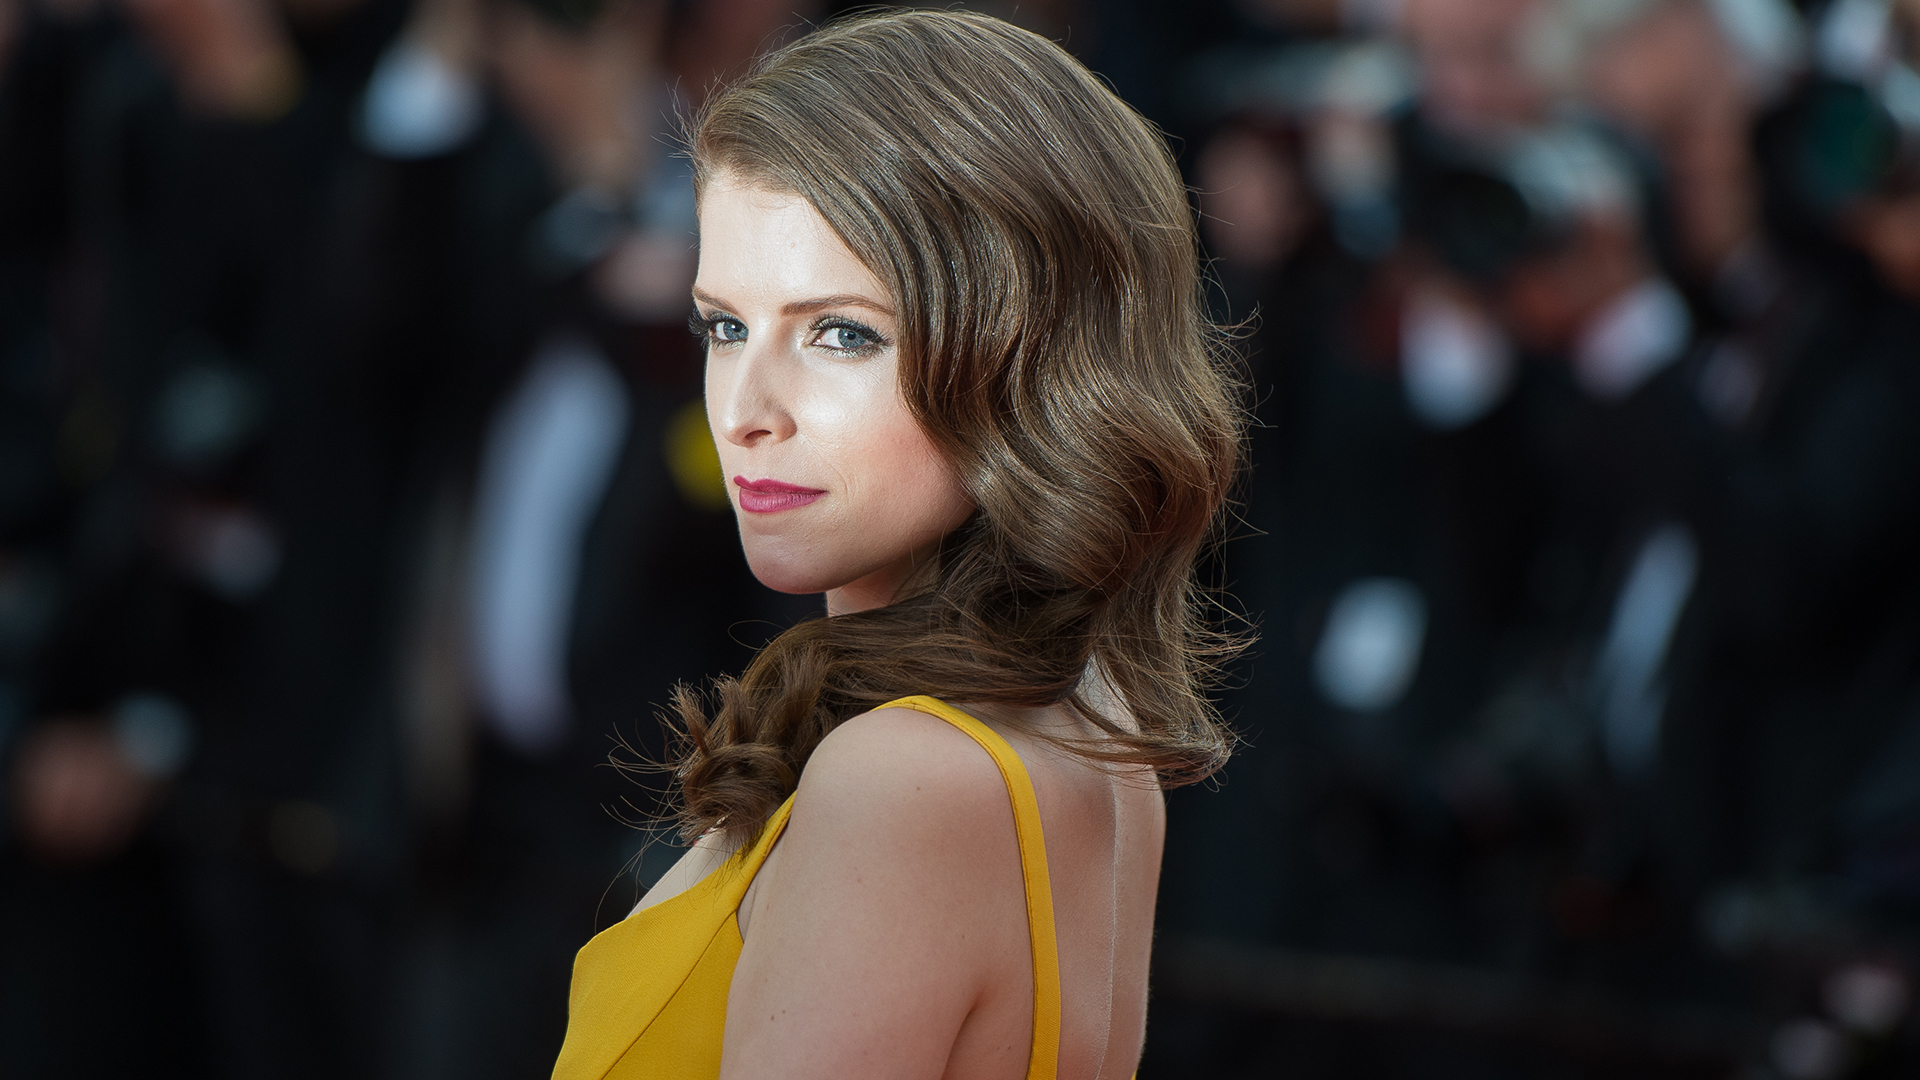 Anna Kendrick Calls Out 'Pitch Perfect 3' for Asking Her to Dress 'Sexier' and 'Show More Skin'